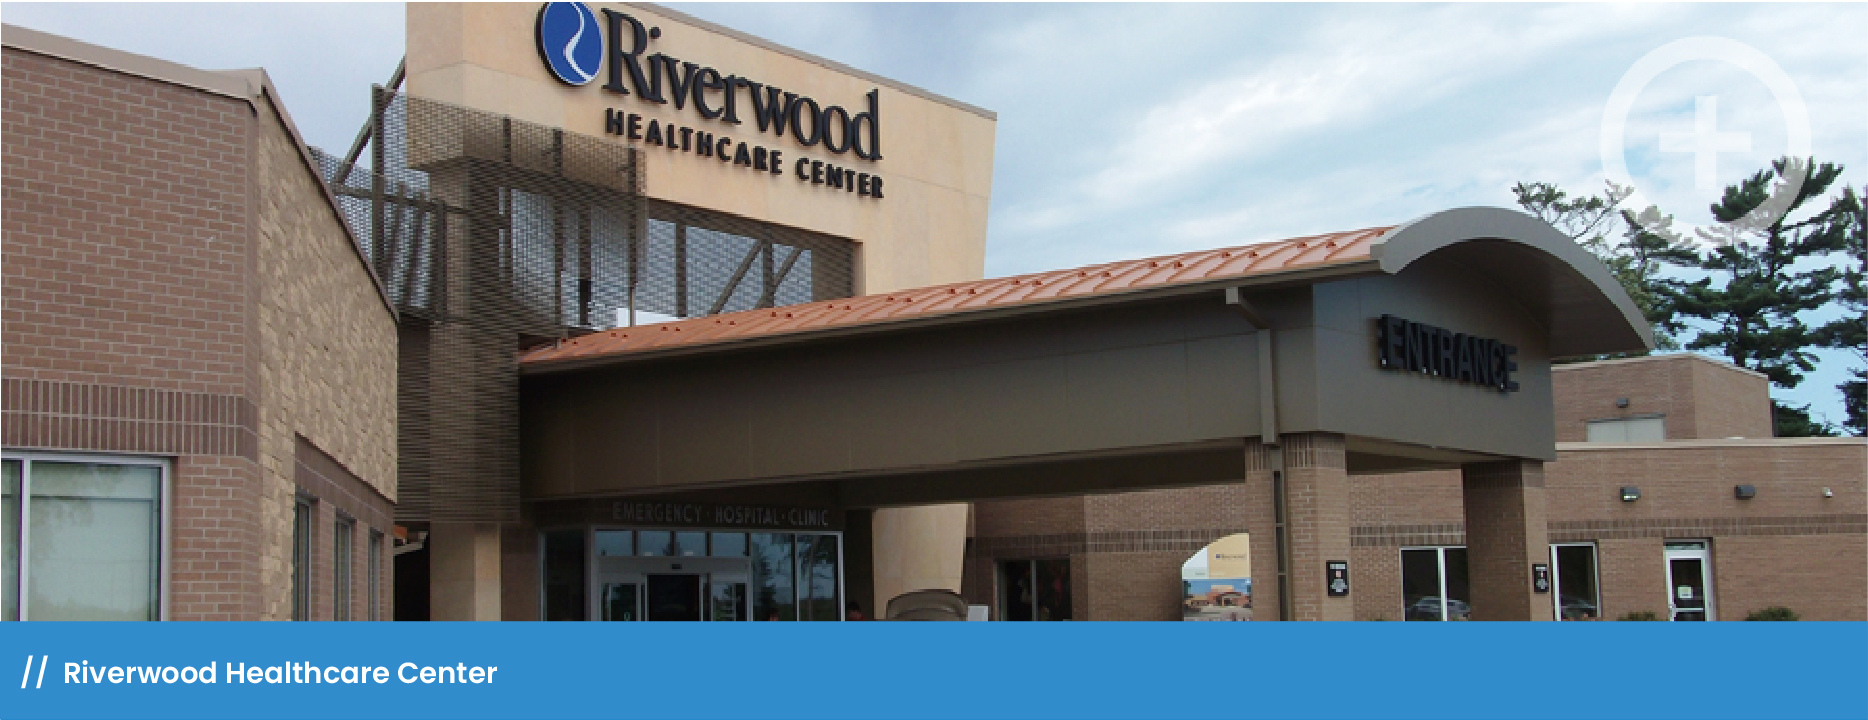 Yanik-Watermark_Riverwood Healthcare Center-